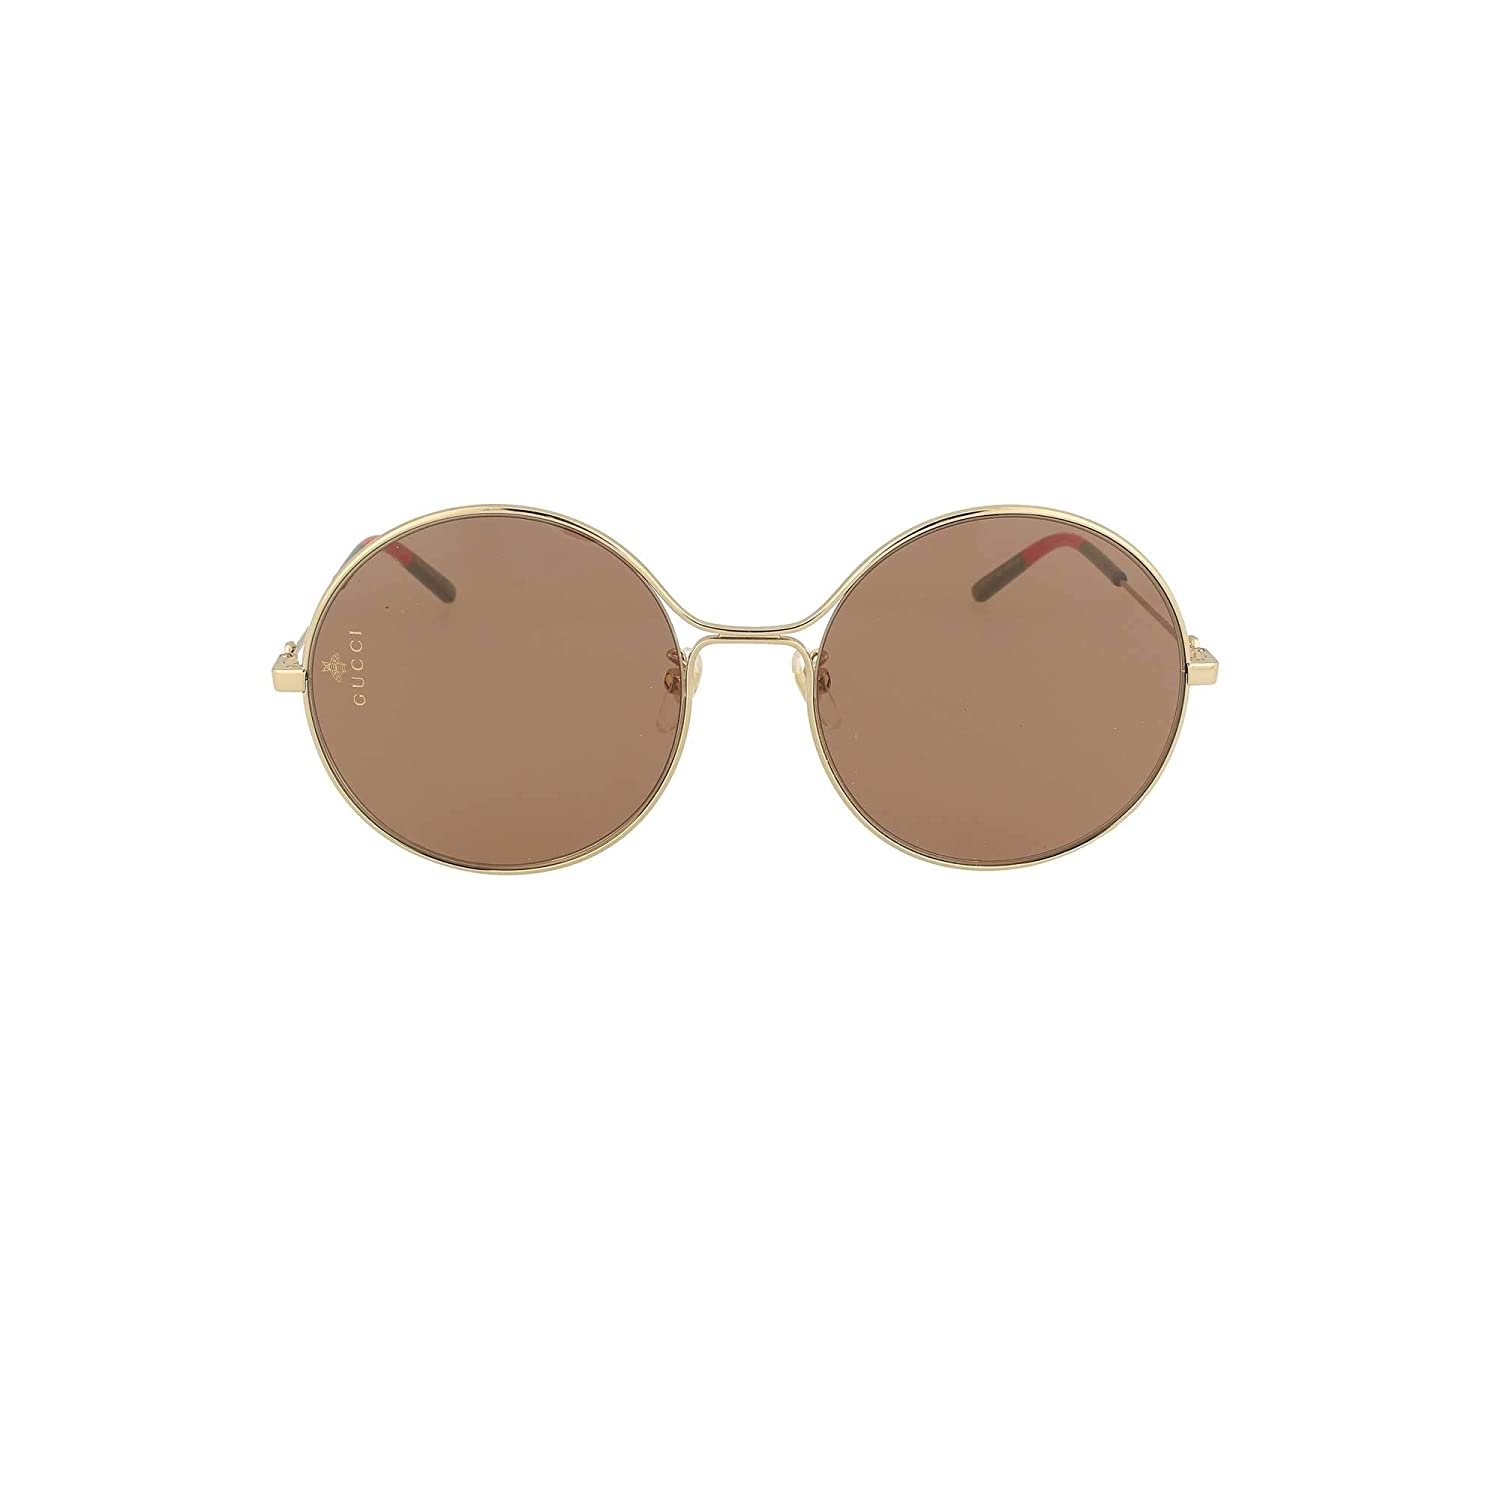 50fd879dd96 Amazon.com  Gucci GG 0395S 002 Gold Metal Round Sunglasses Brown Lens   Clothing